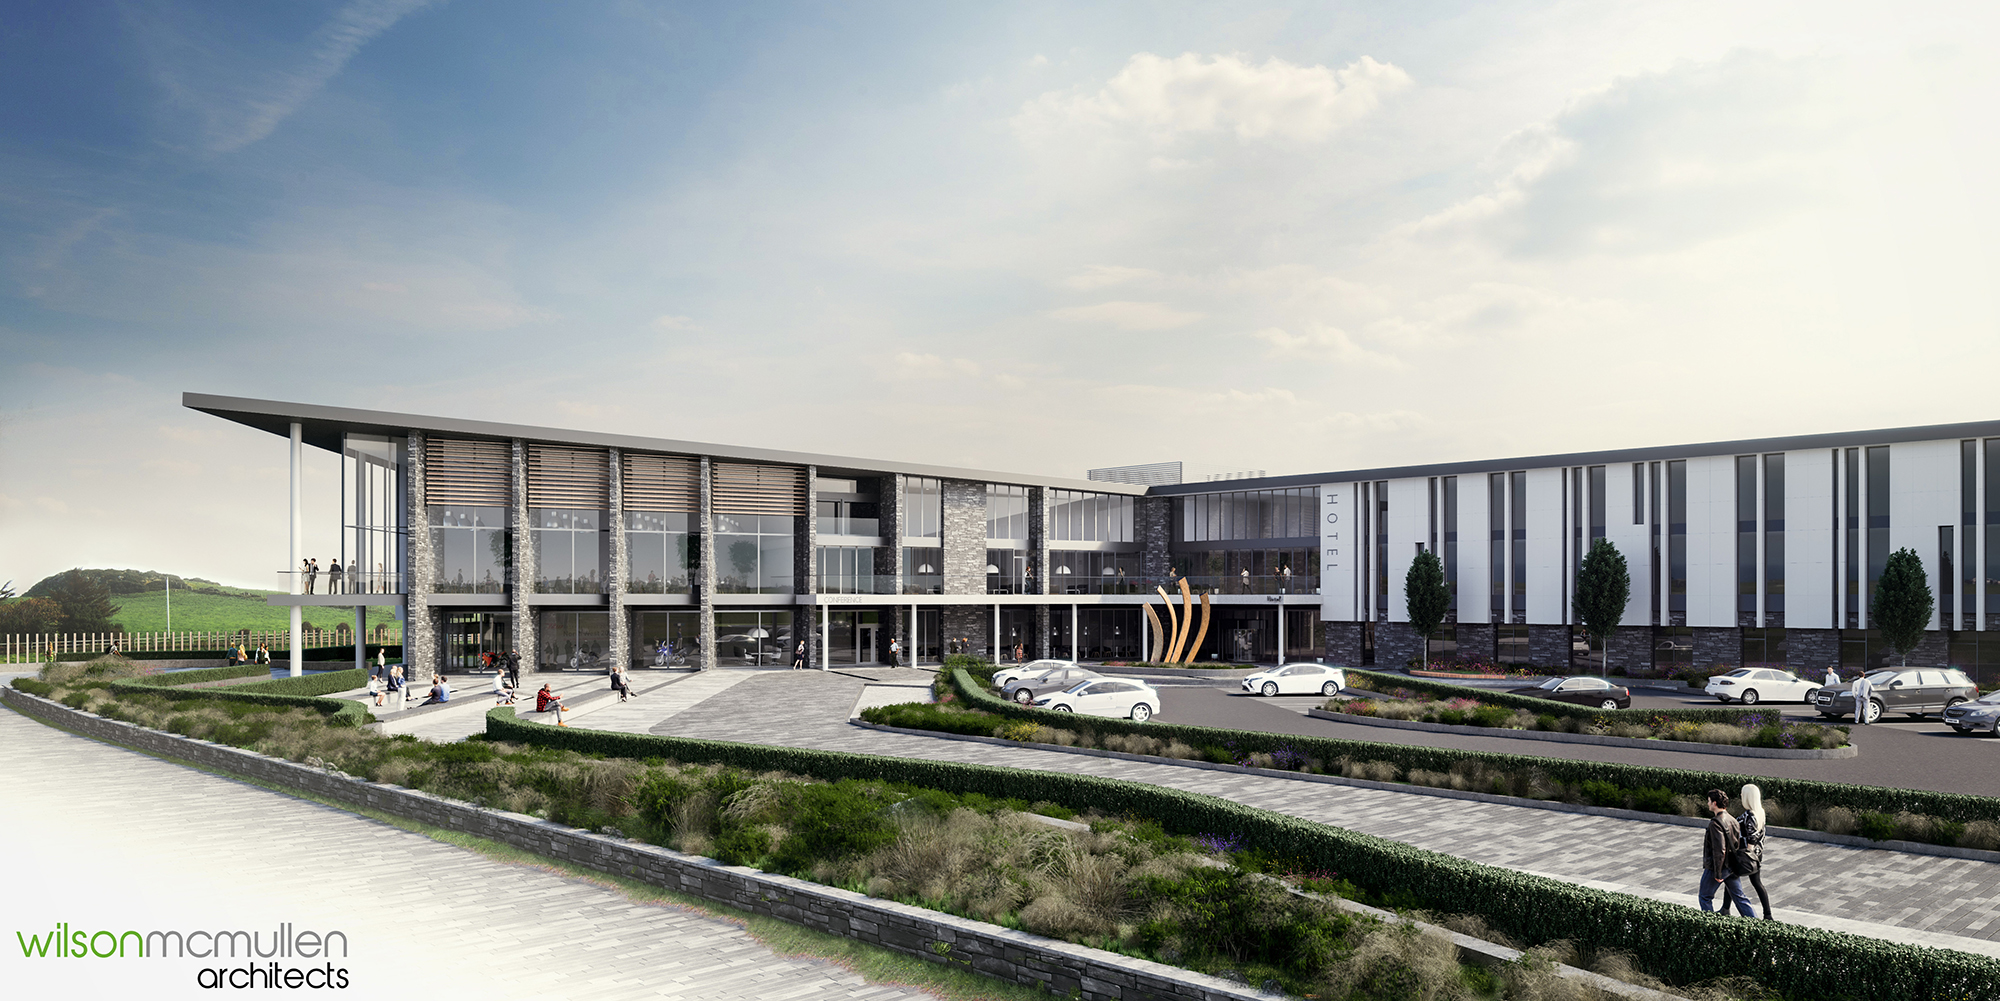 Tourism & Hospitality - Remarkable developments on the North Coast